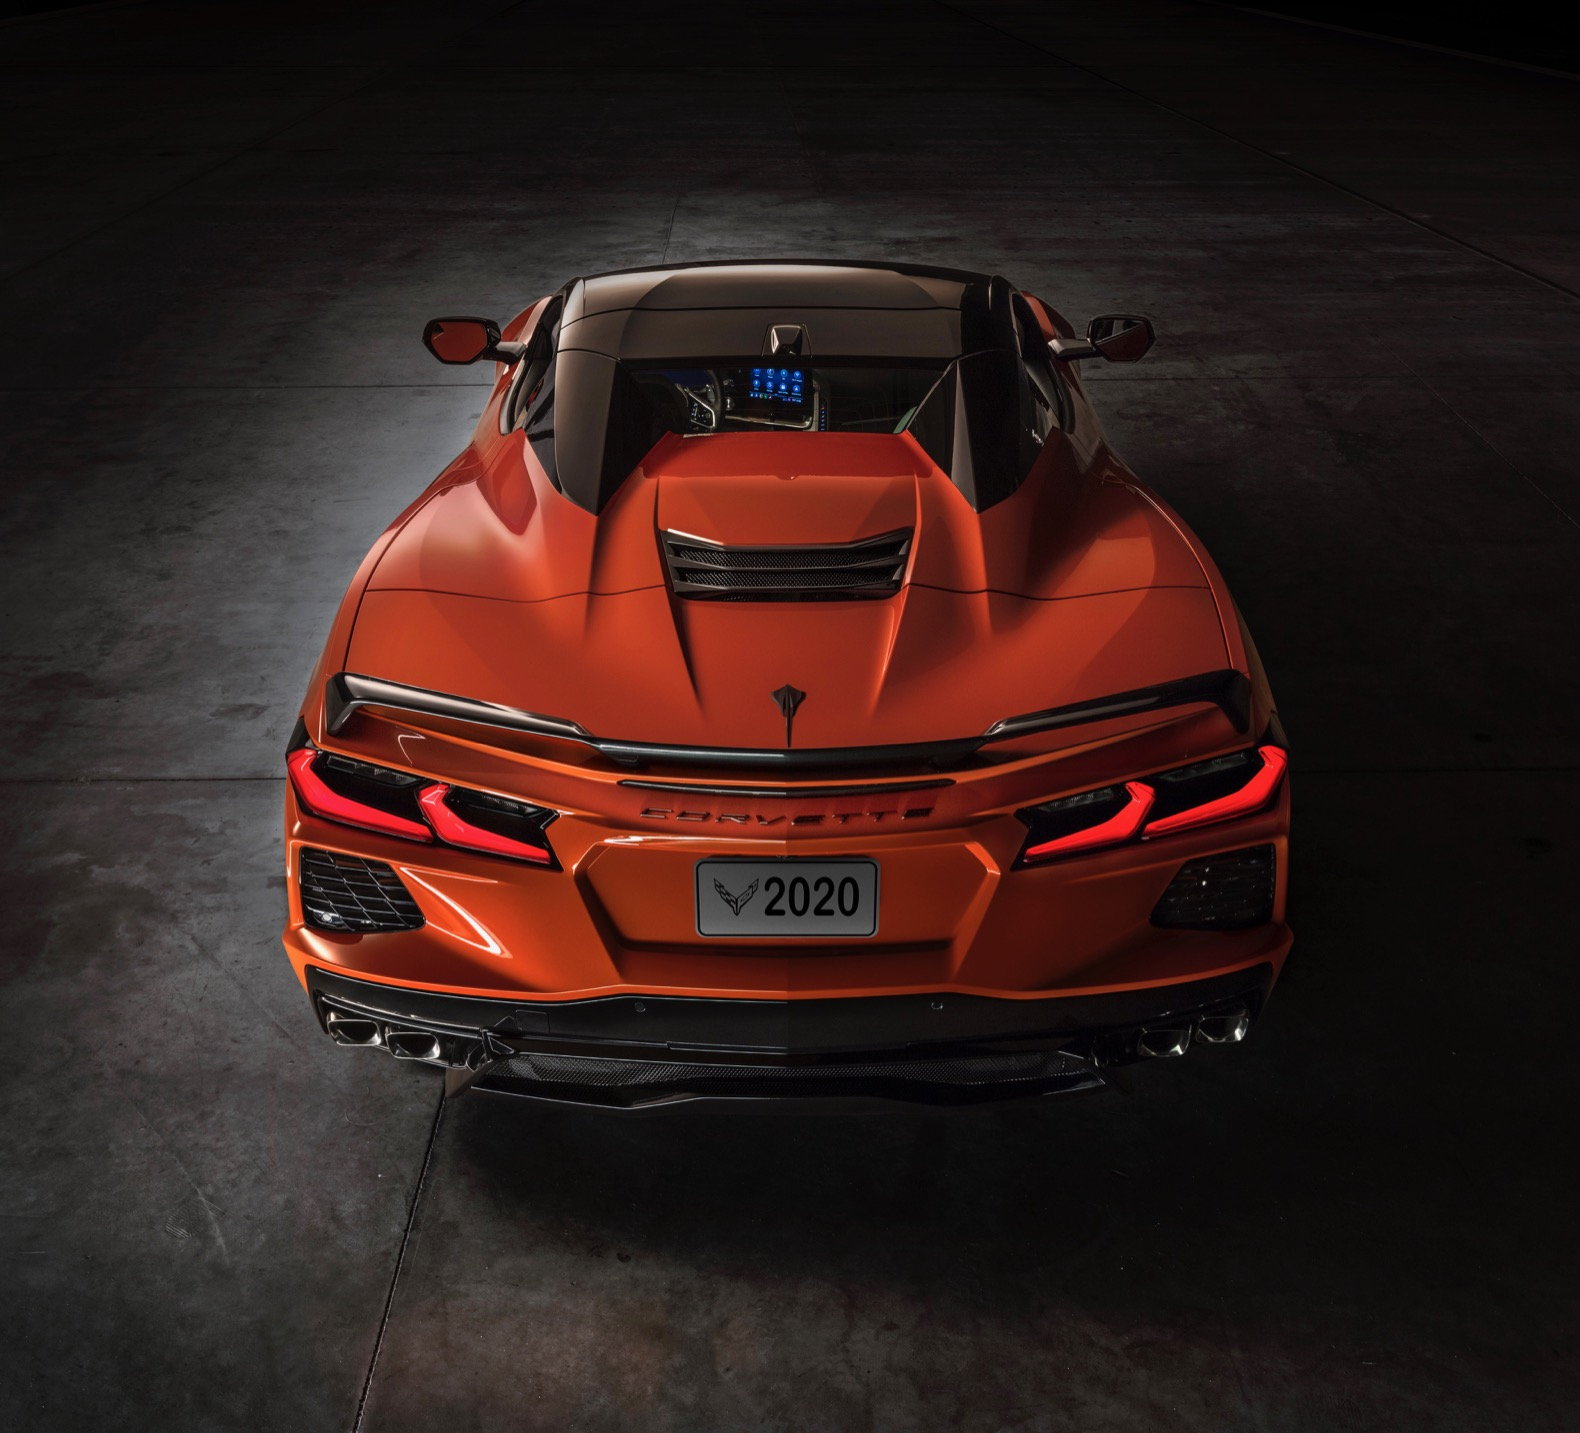 2020 Chevy Corvette Stingray Convertible Orders Commence